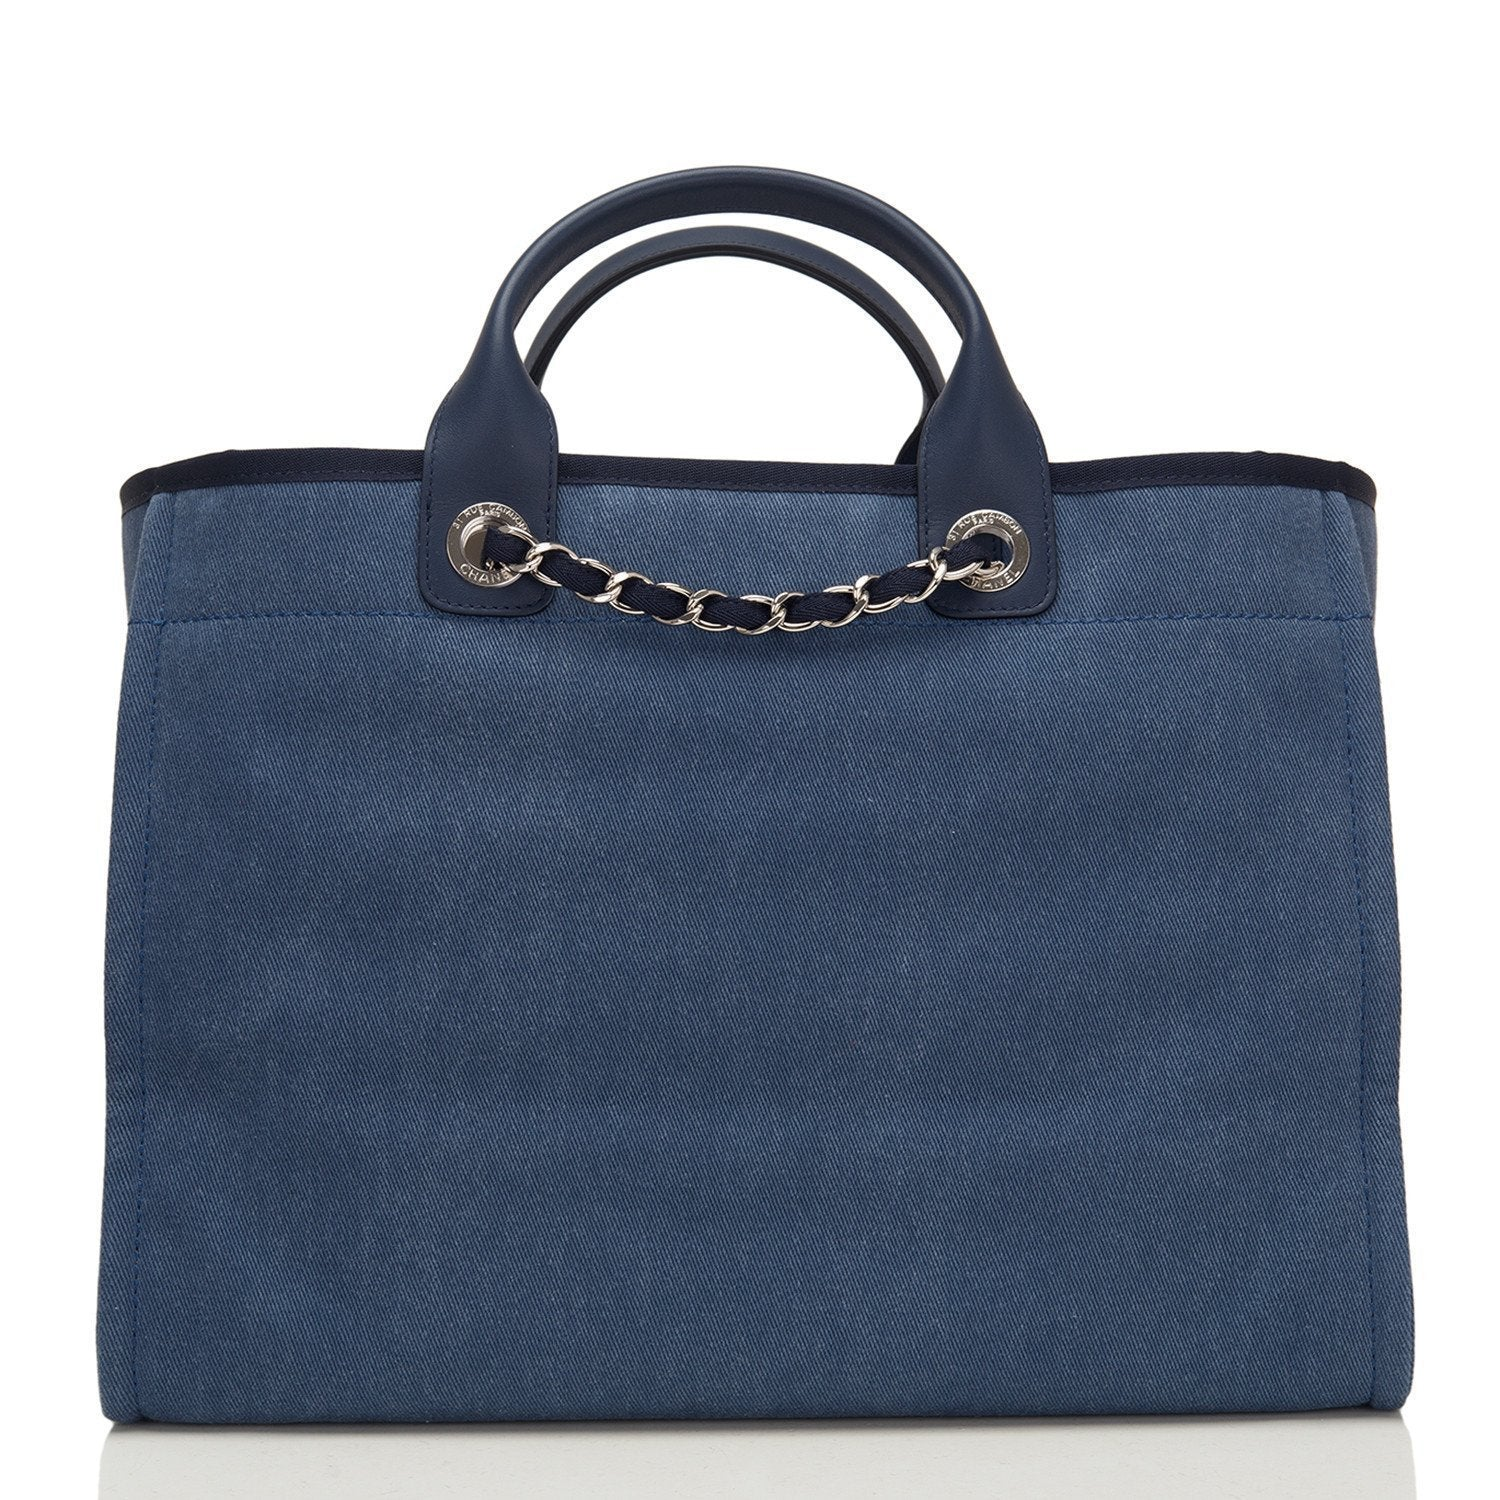 cee1cb93e0a7 ... Chanel Large Navy Canvas With Sequins Deauville Tote Handbags ...